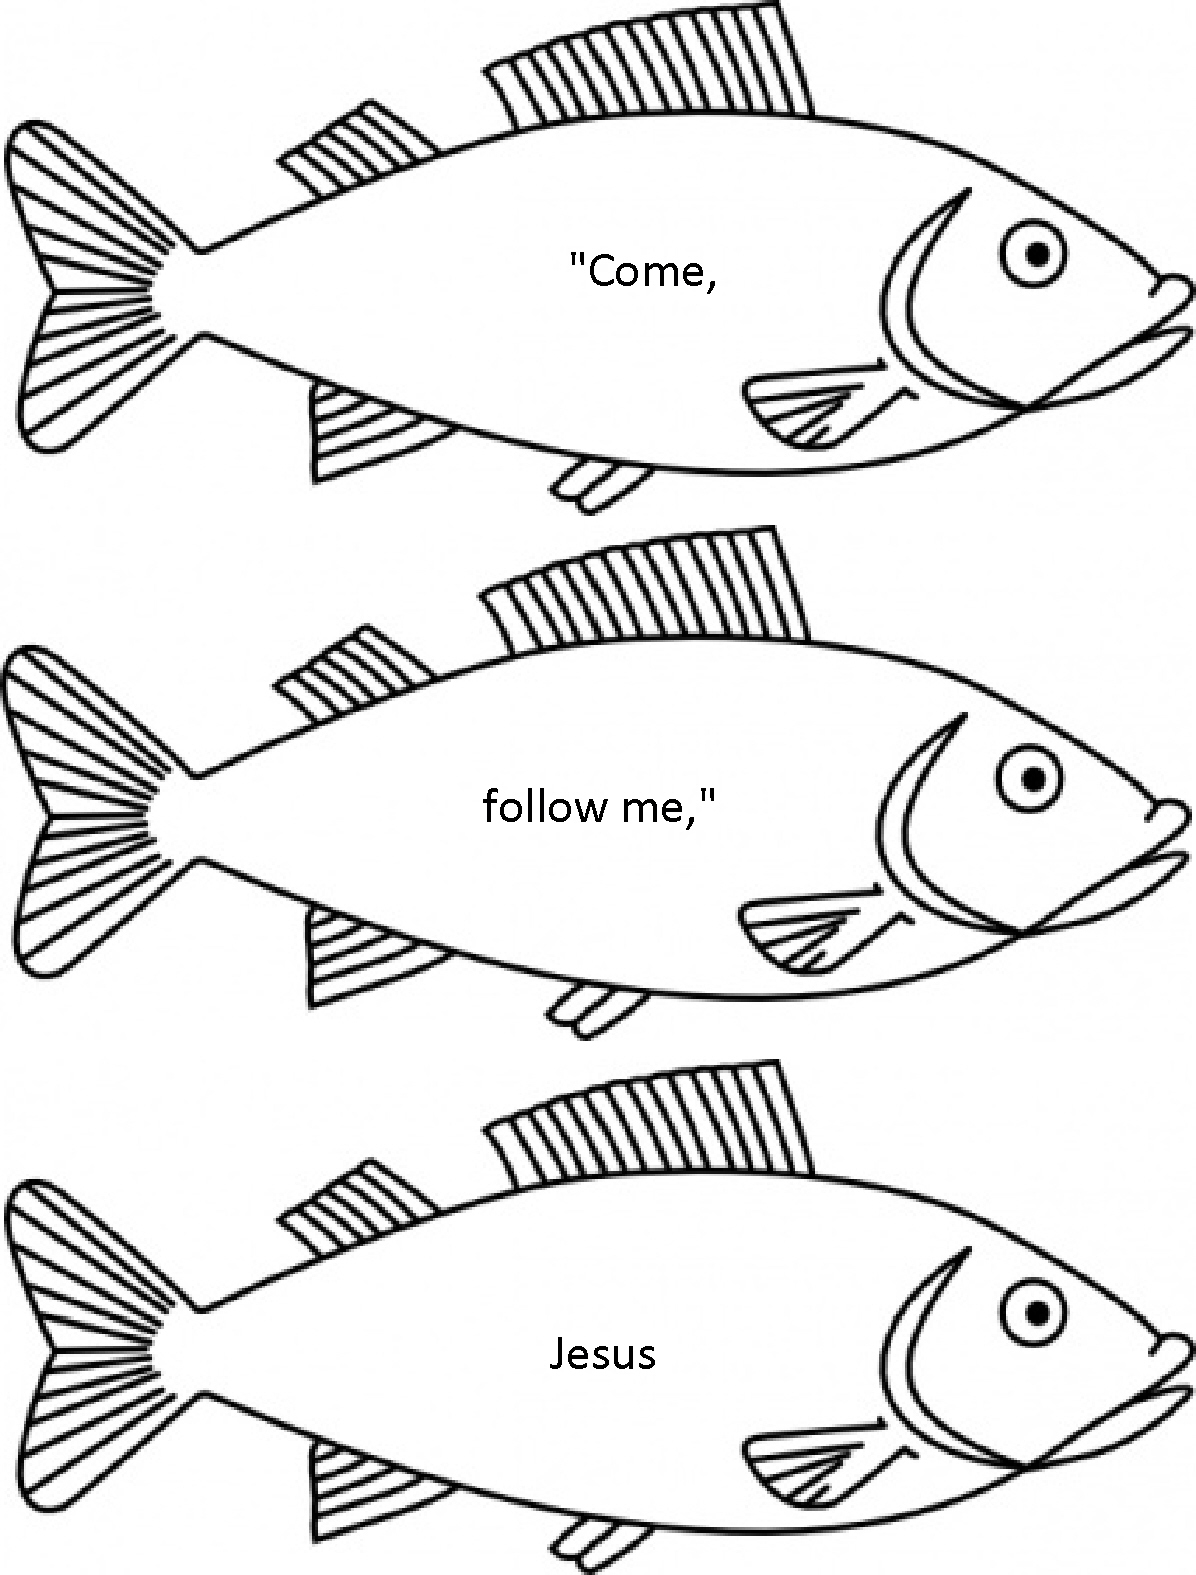 Fisher's of Men Coloring Pages http://imagixs.com/fishers-of-men-coloring-pages/